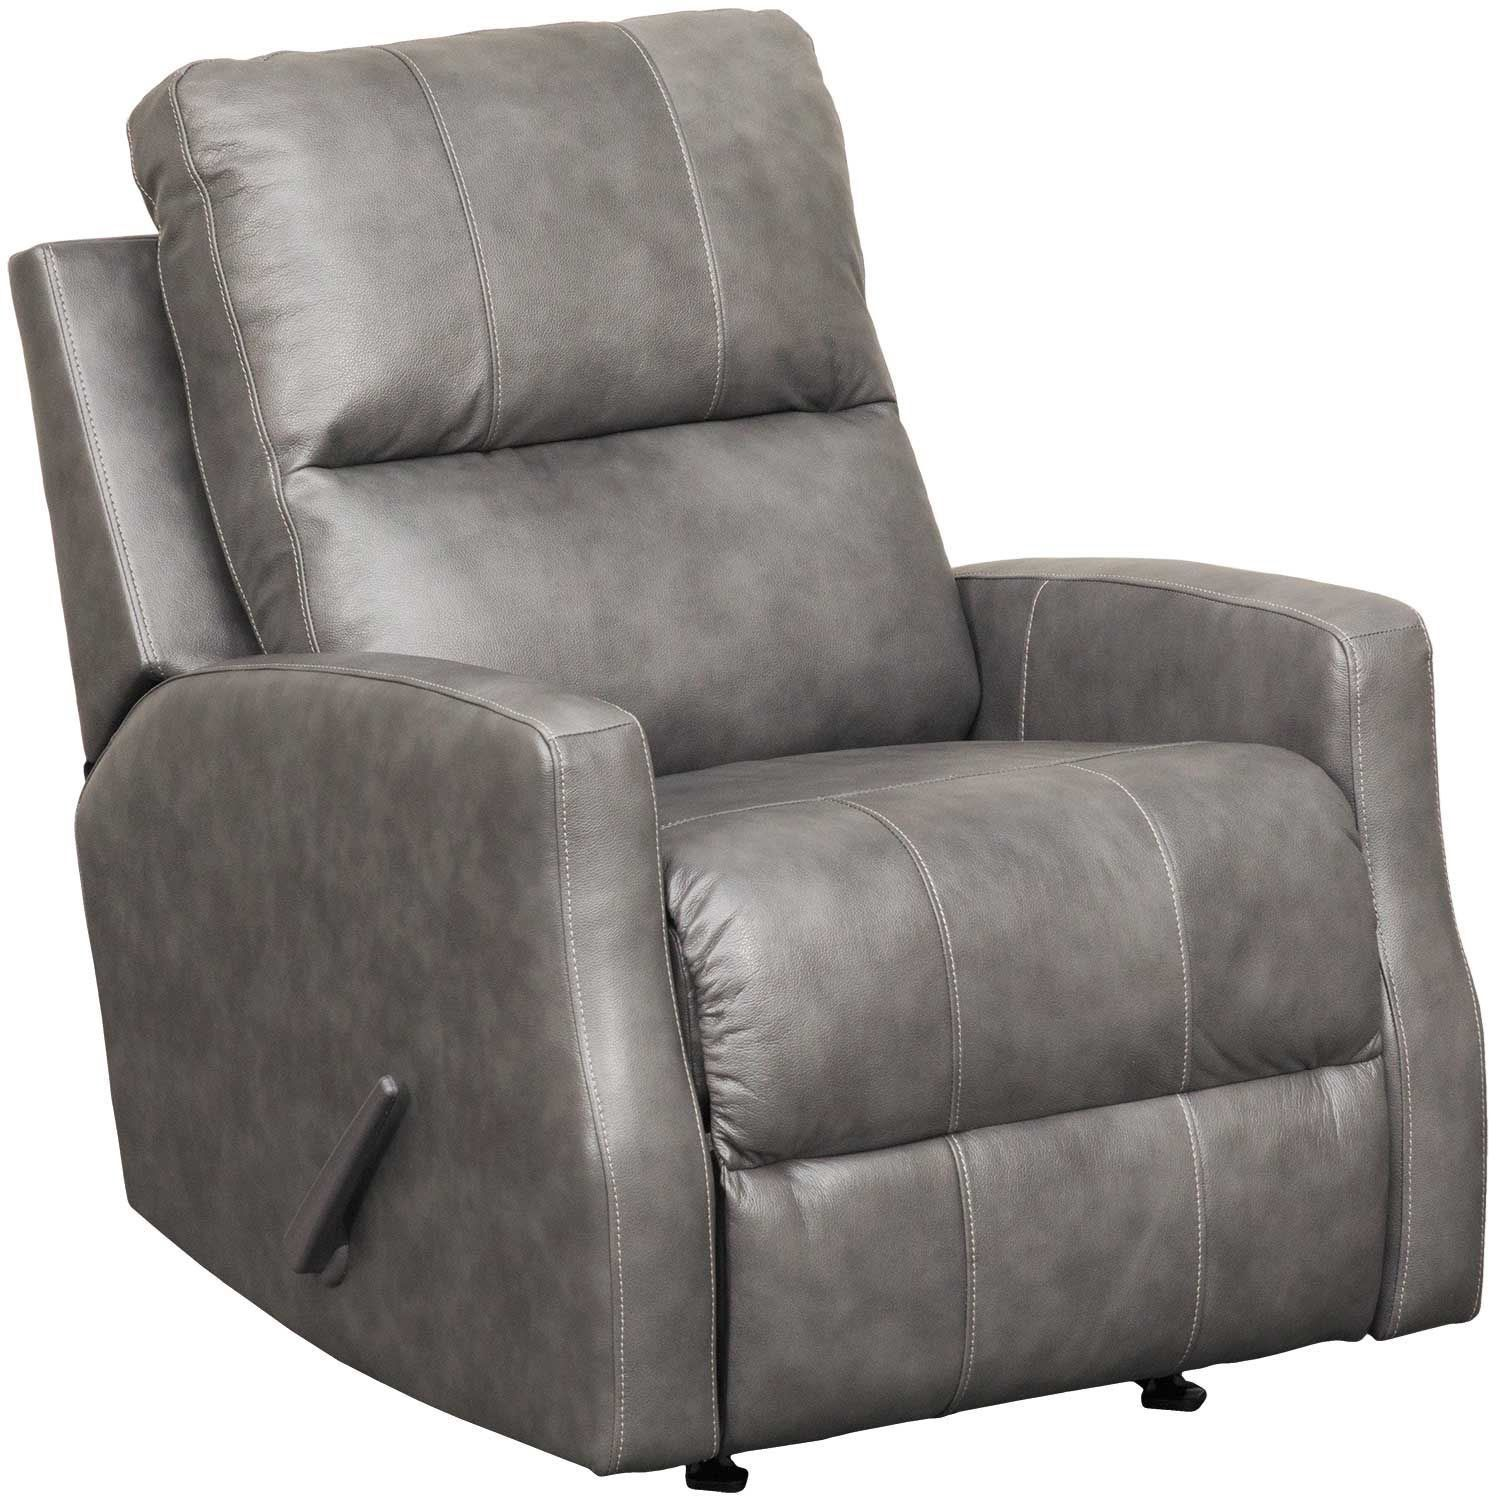 Ashley Furniture Recliner Chairs Get Comfy In The Gulfbay Charcoal Leather Recliner From Ashley